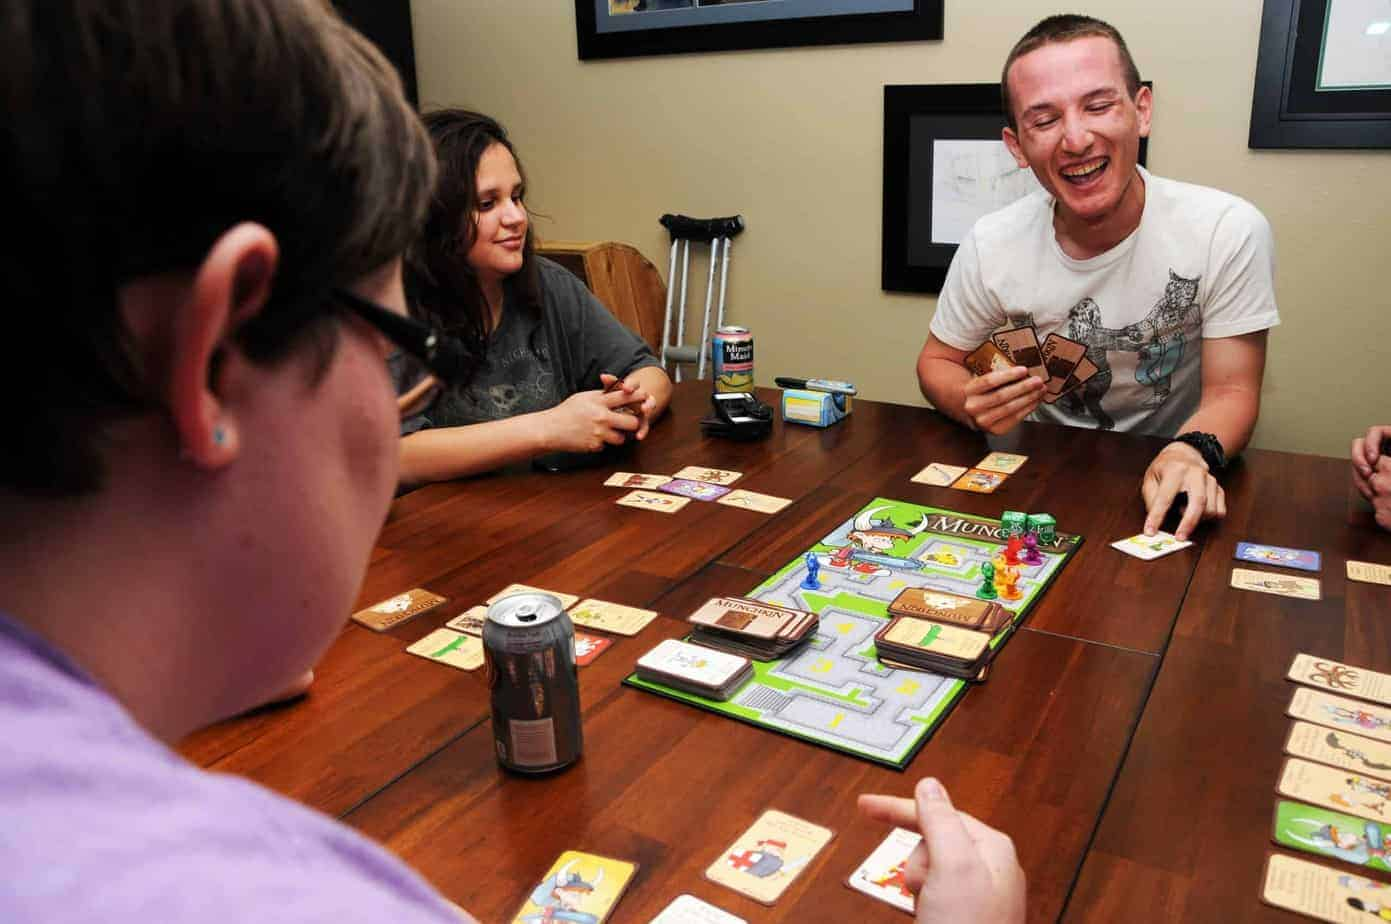 Best Game Night Games for Game Night